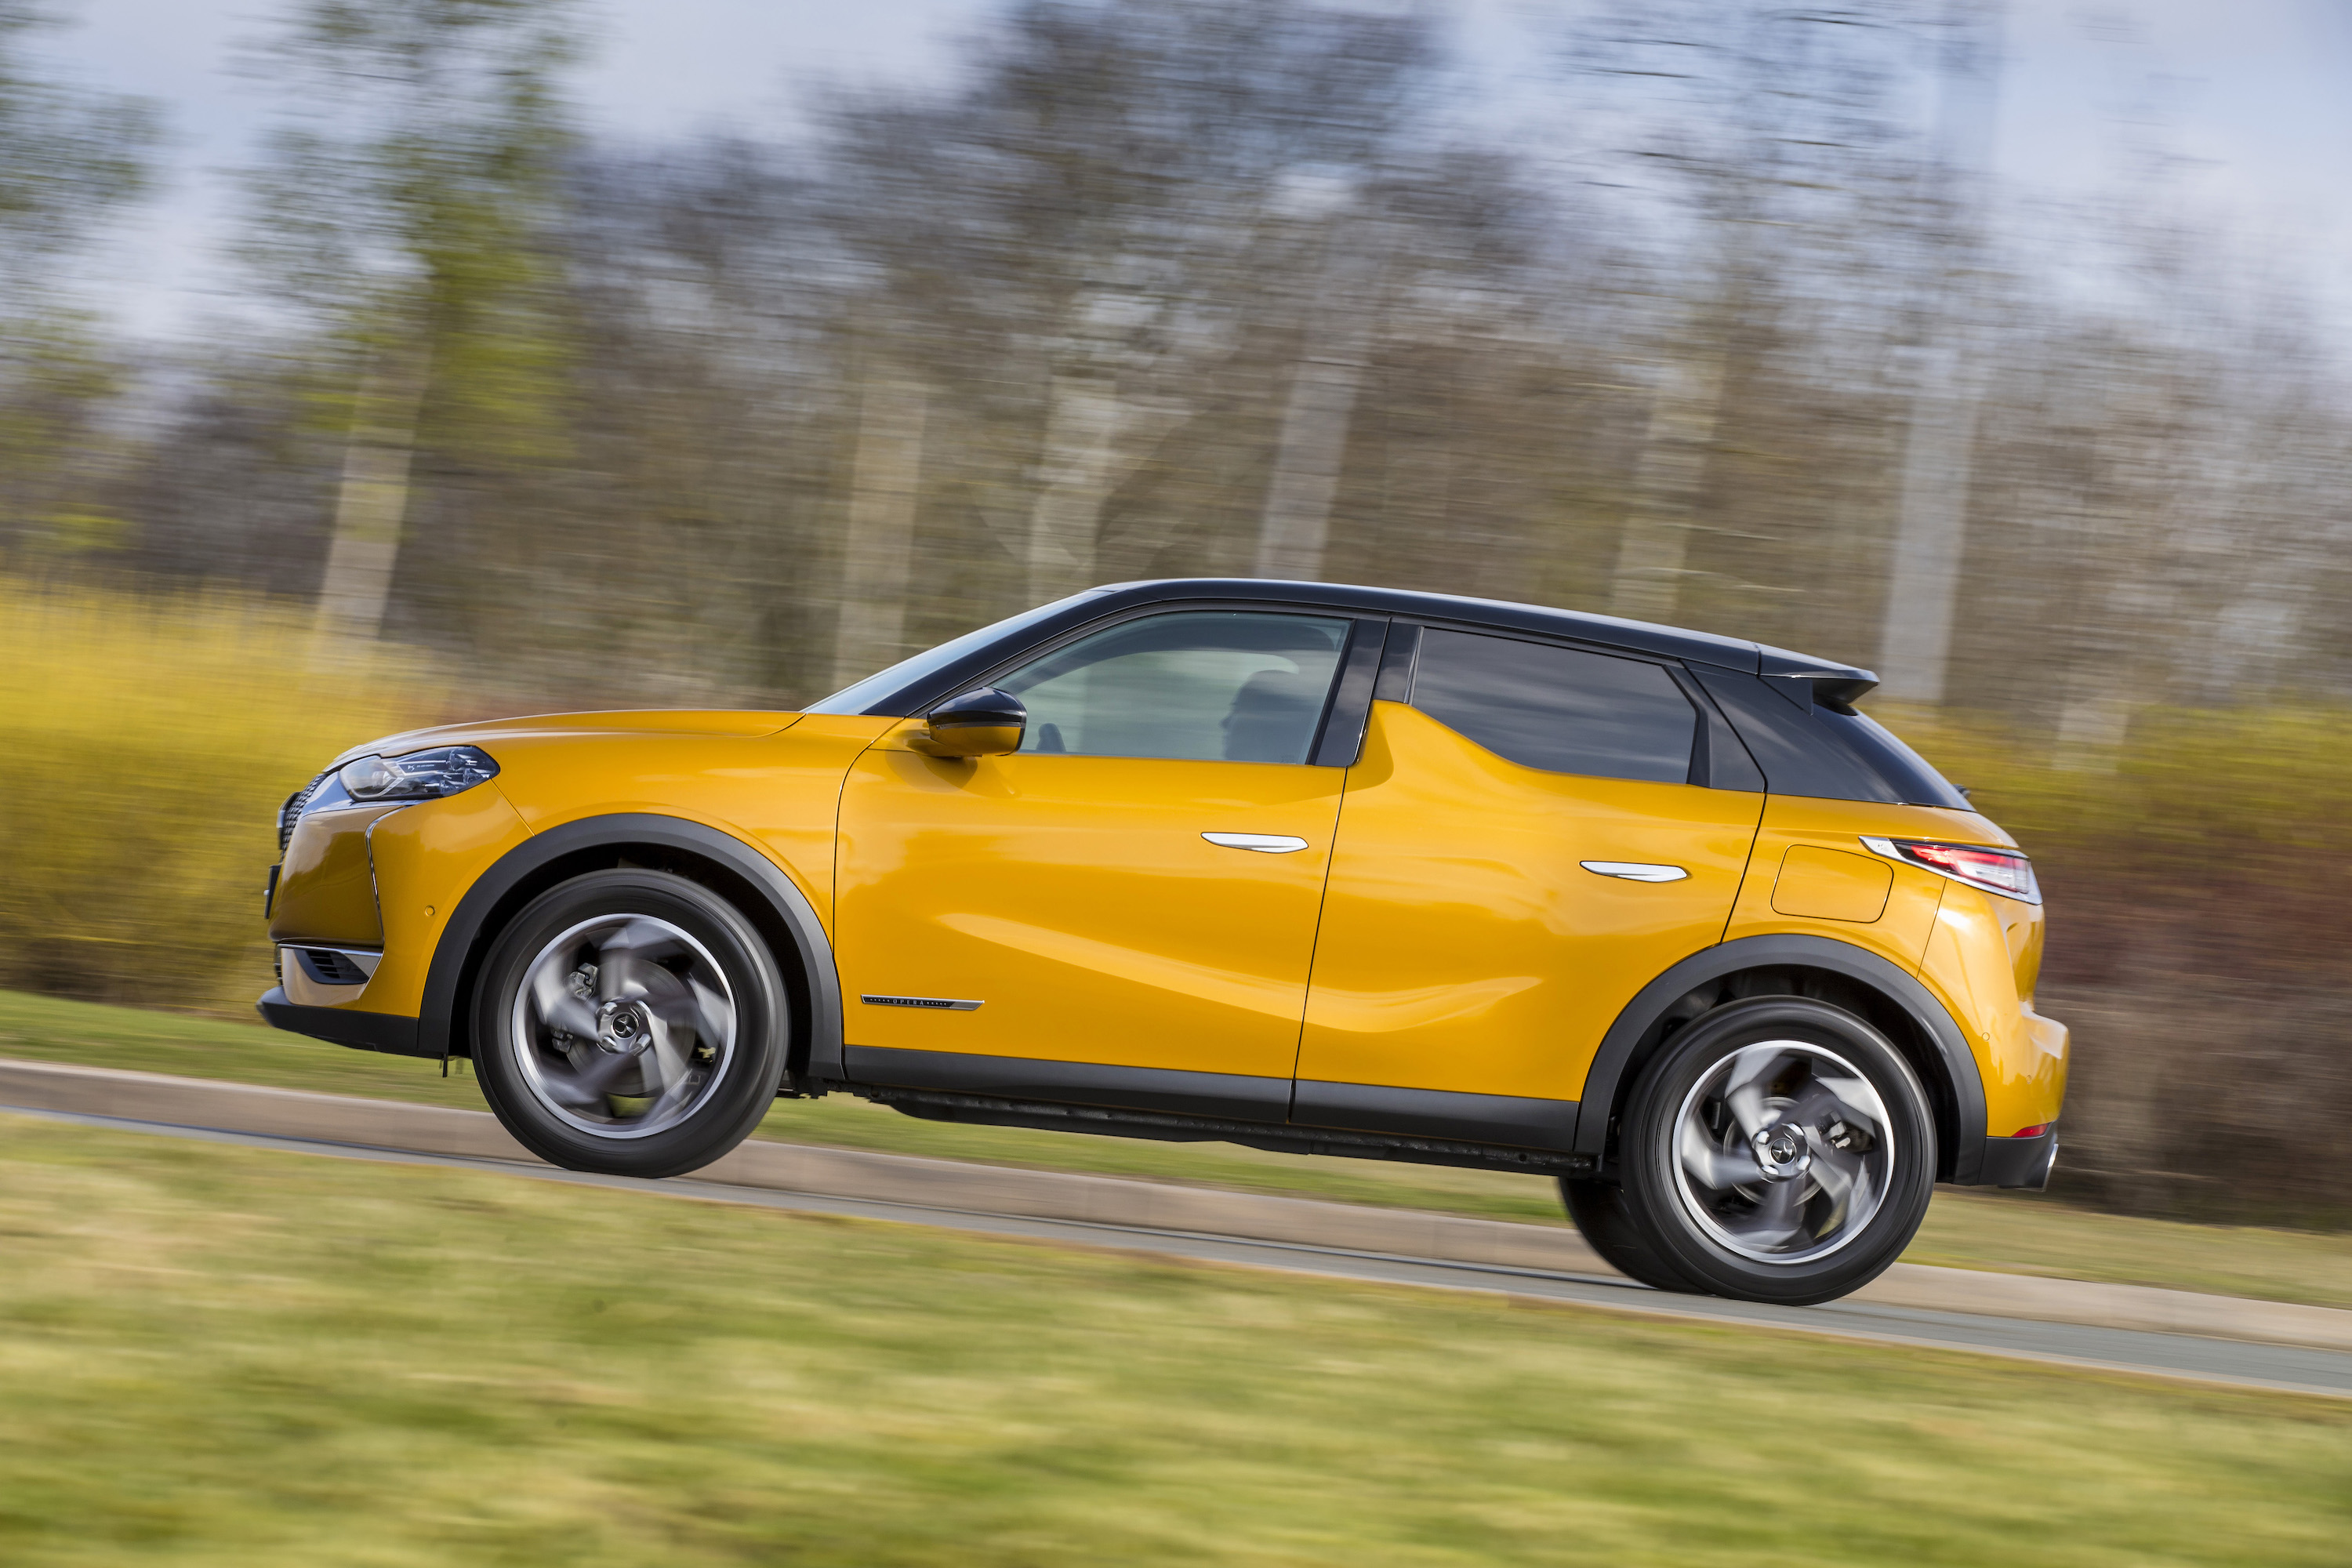 The DS 3 Crossback is the firm's second SUV-style vehicle